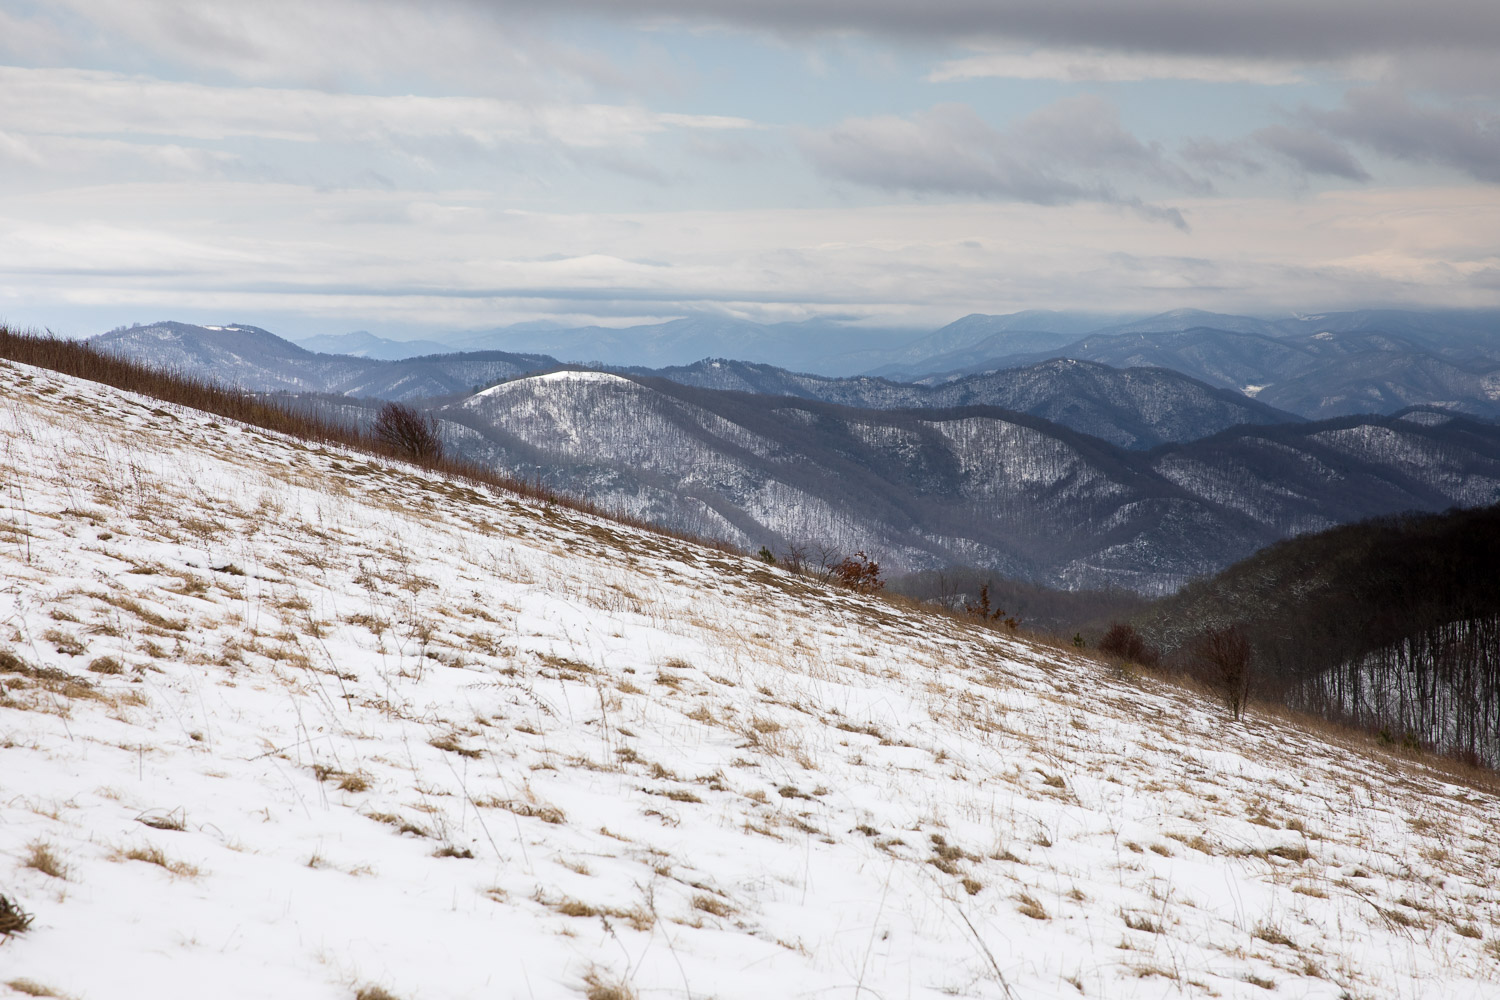 A view from halfway up Max Patch